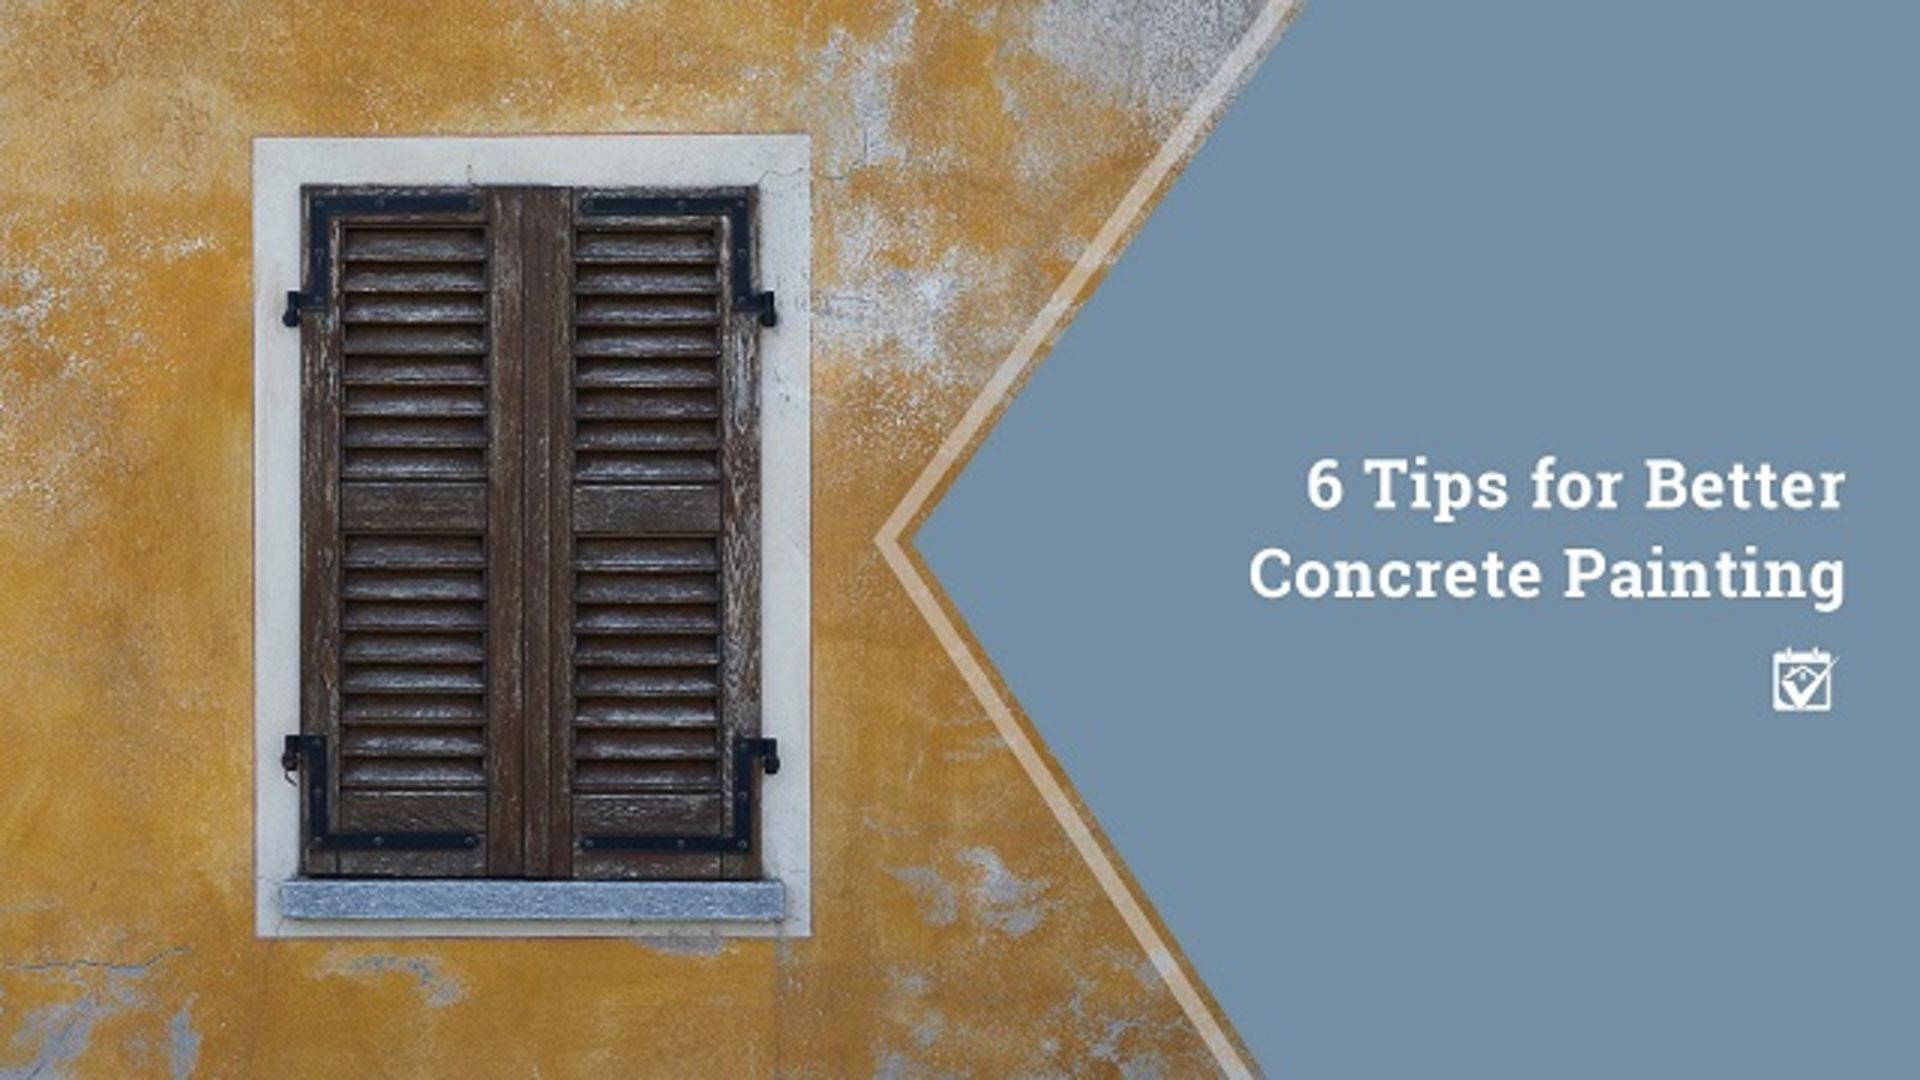 6 Tips for Better Concrete Painting